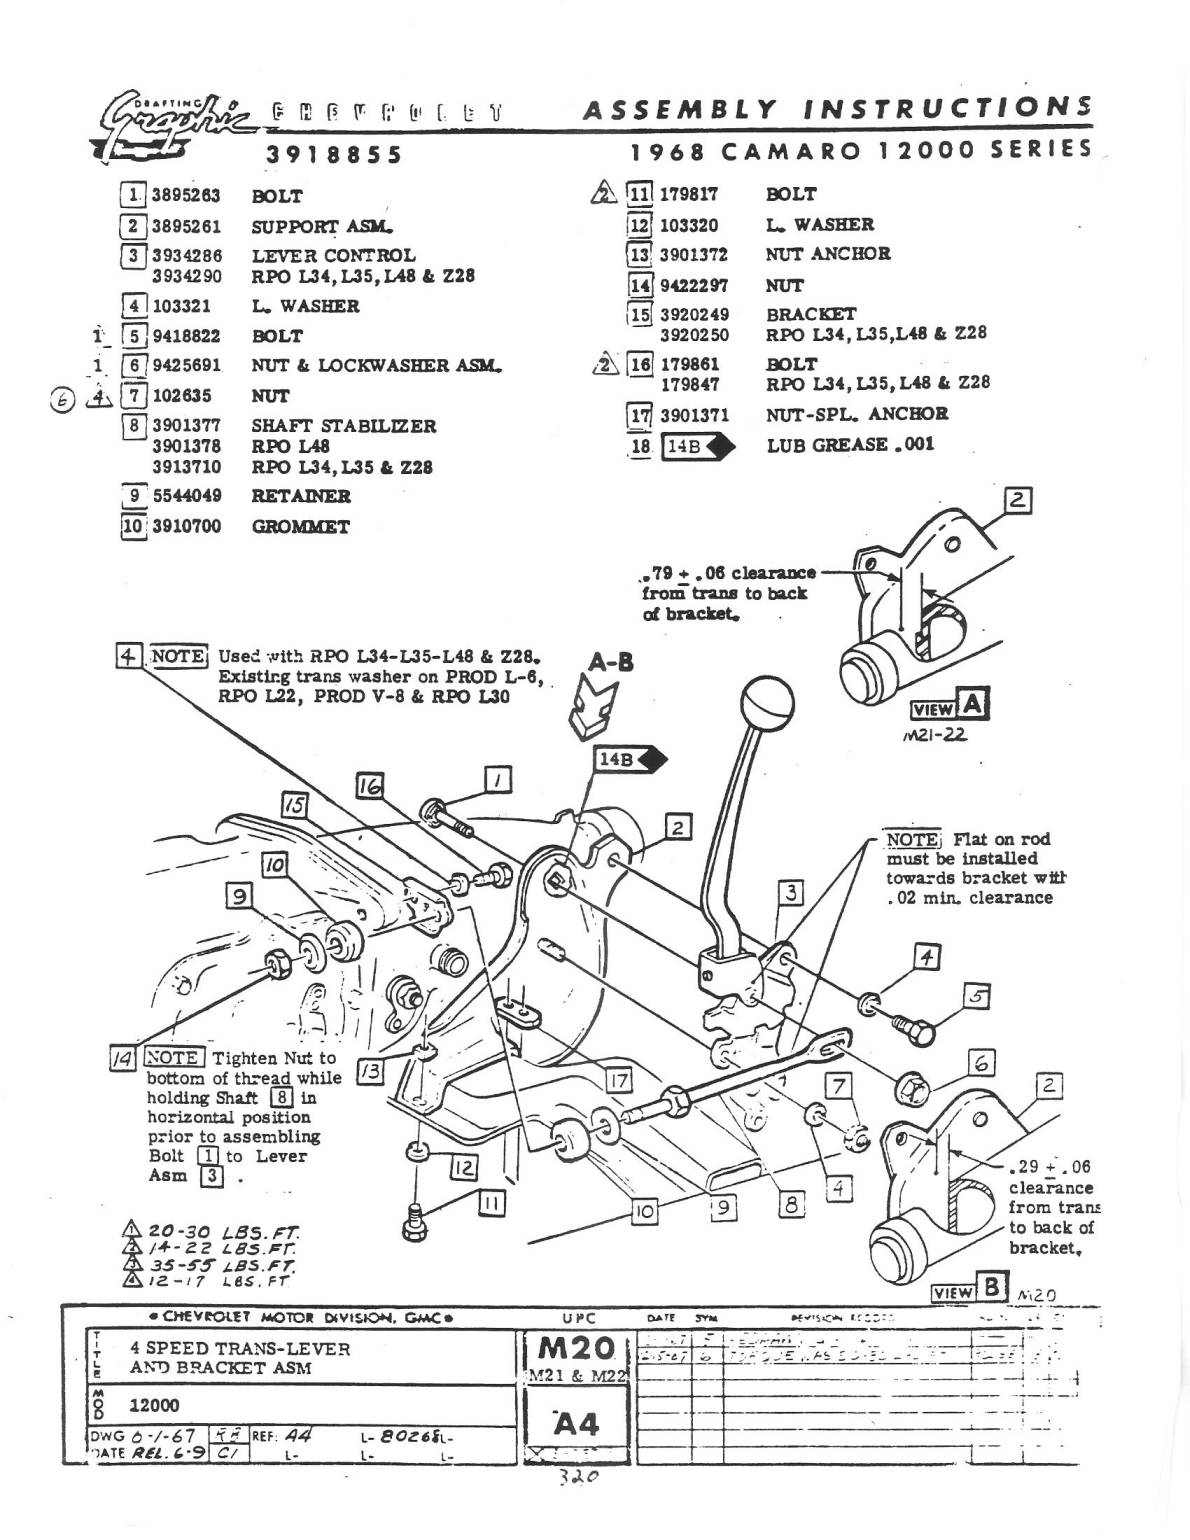 Chevy 3 Speed Column Shift Lever Wiring Harness Wiring Diagram